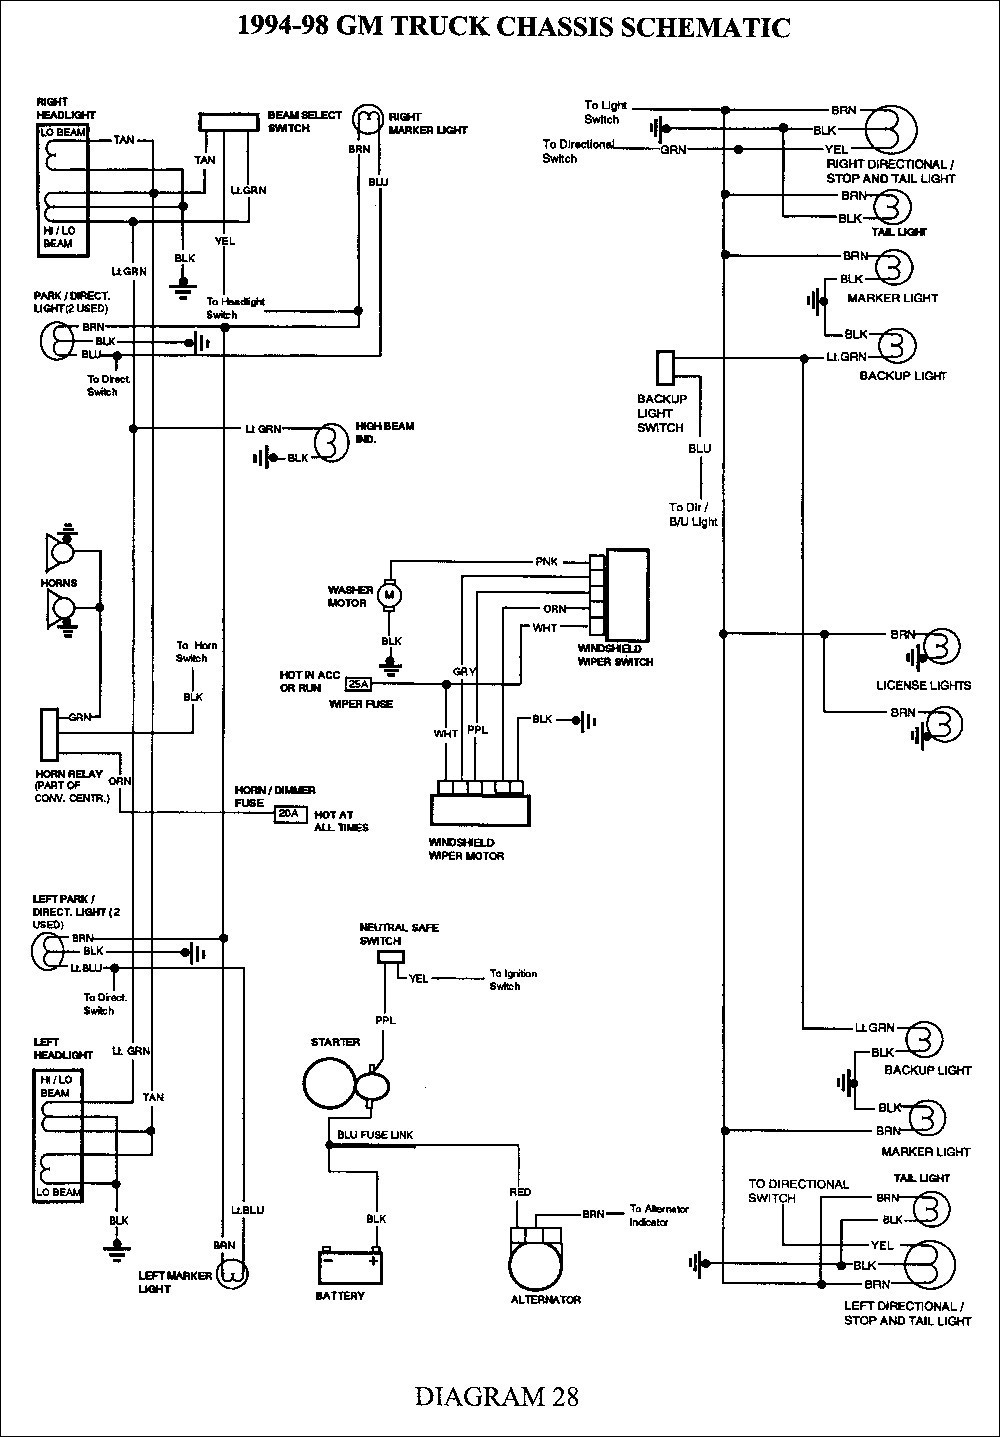 medium resolution of 97 gmc van wiring diagram stereo wiring diagram sys 97 gmc wiring diagram wiring diagram split